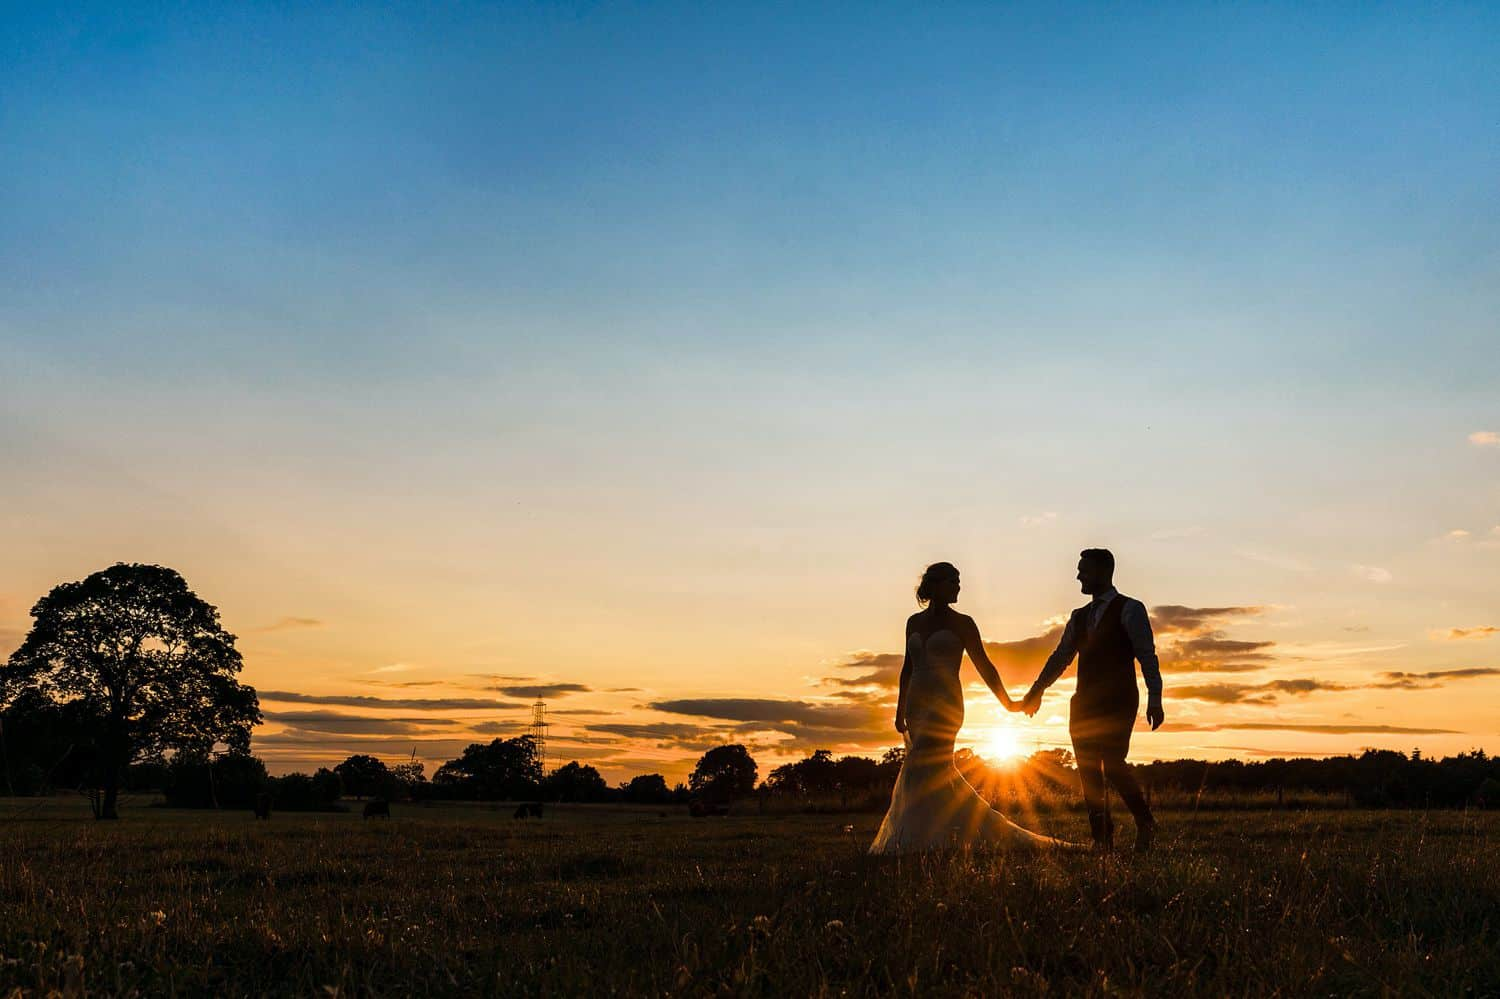 Silhouette of a bride and groom walking along the beach at sunset